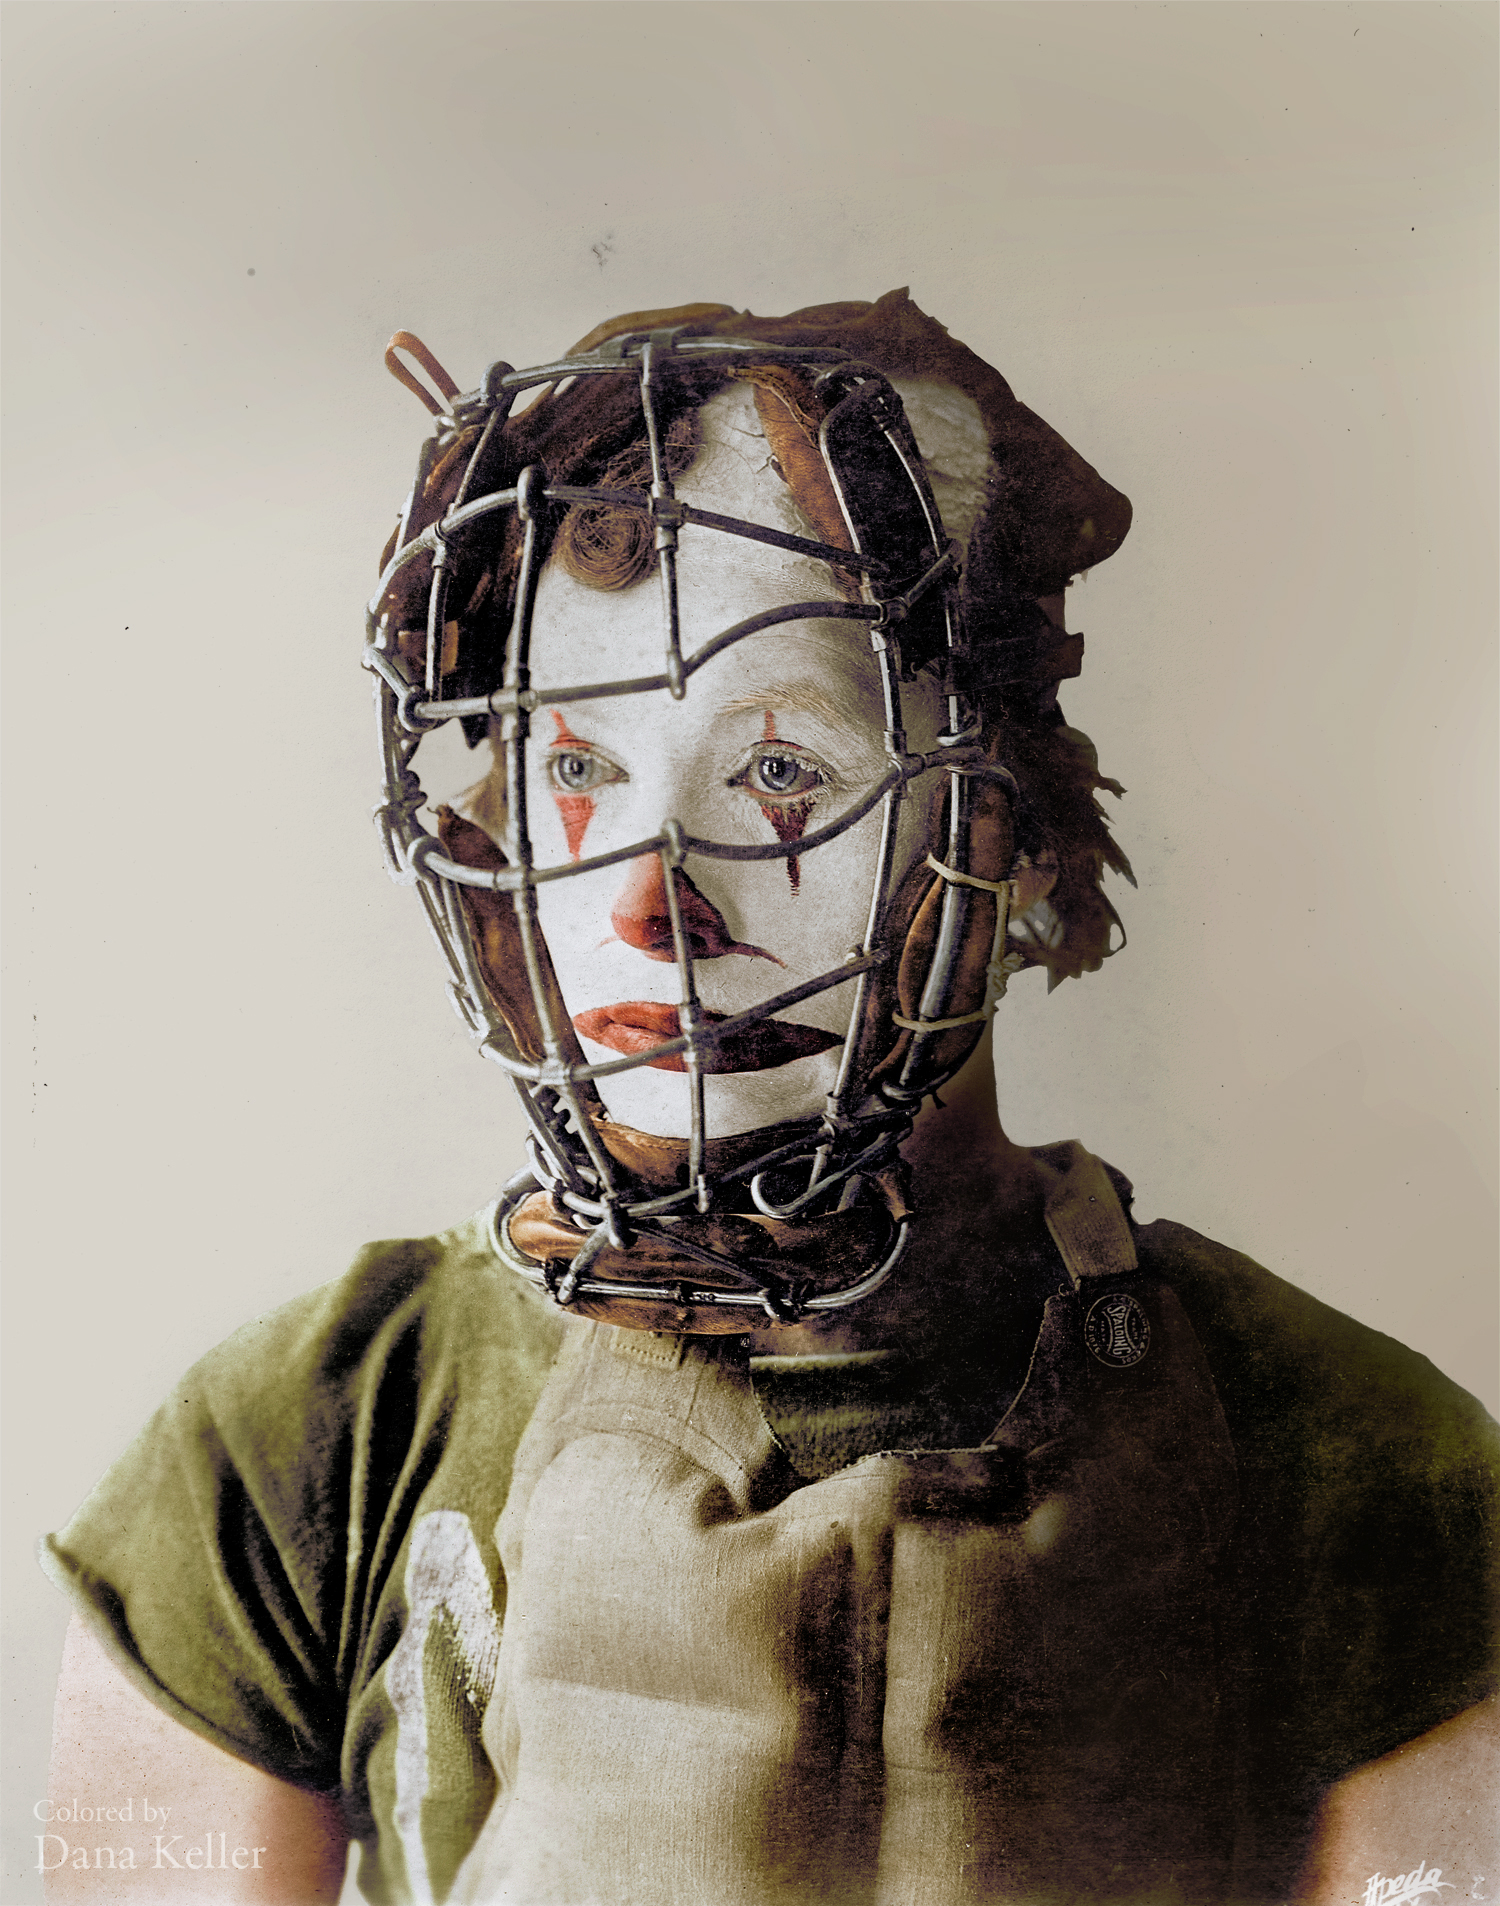 Slivers, the Baseball Clown, ca. 1904